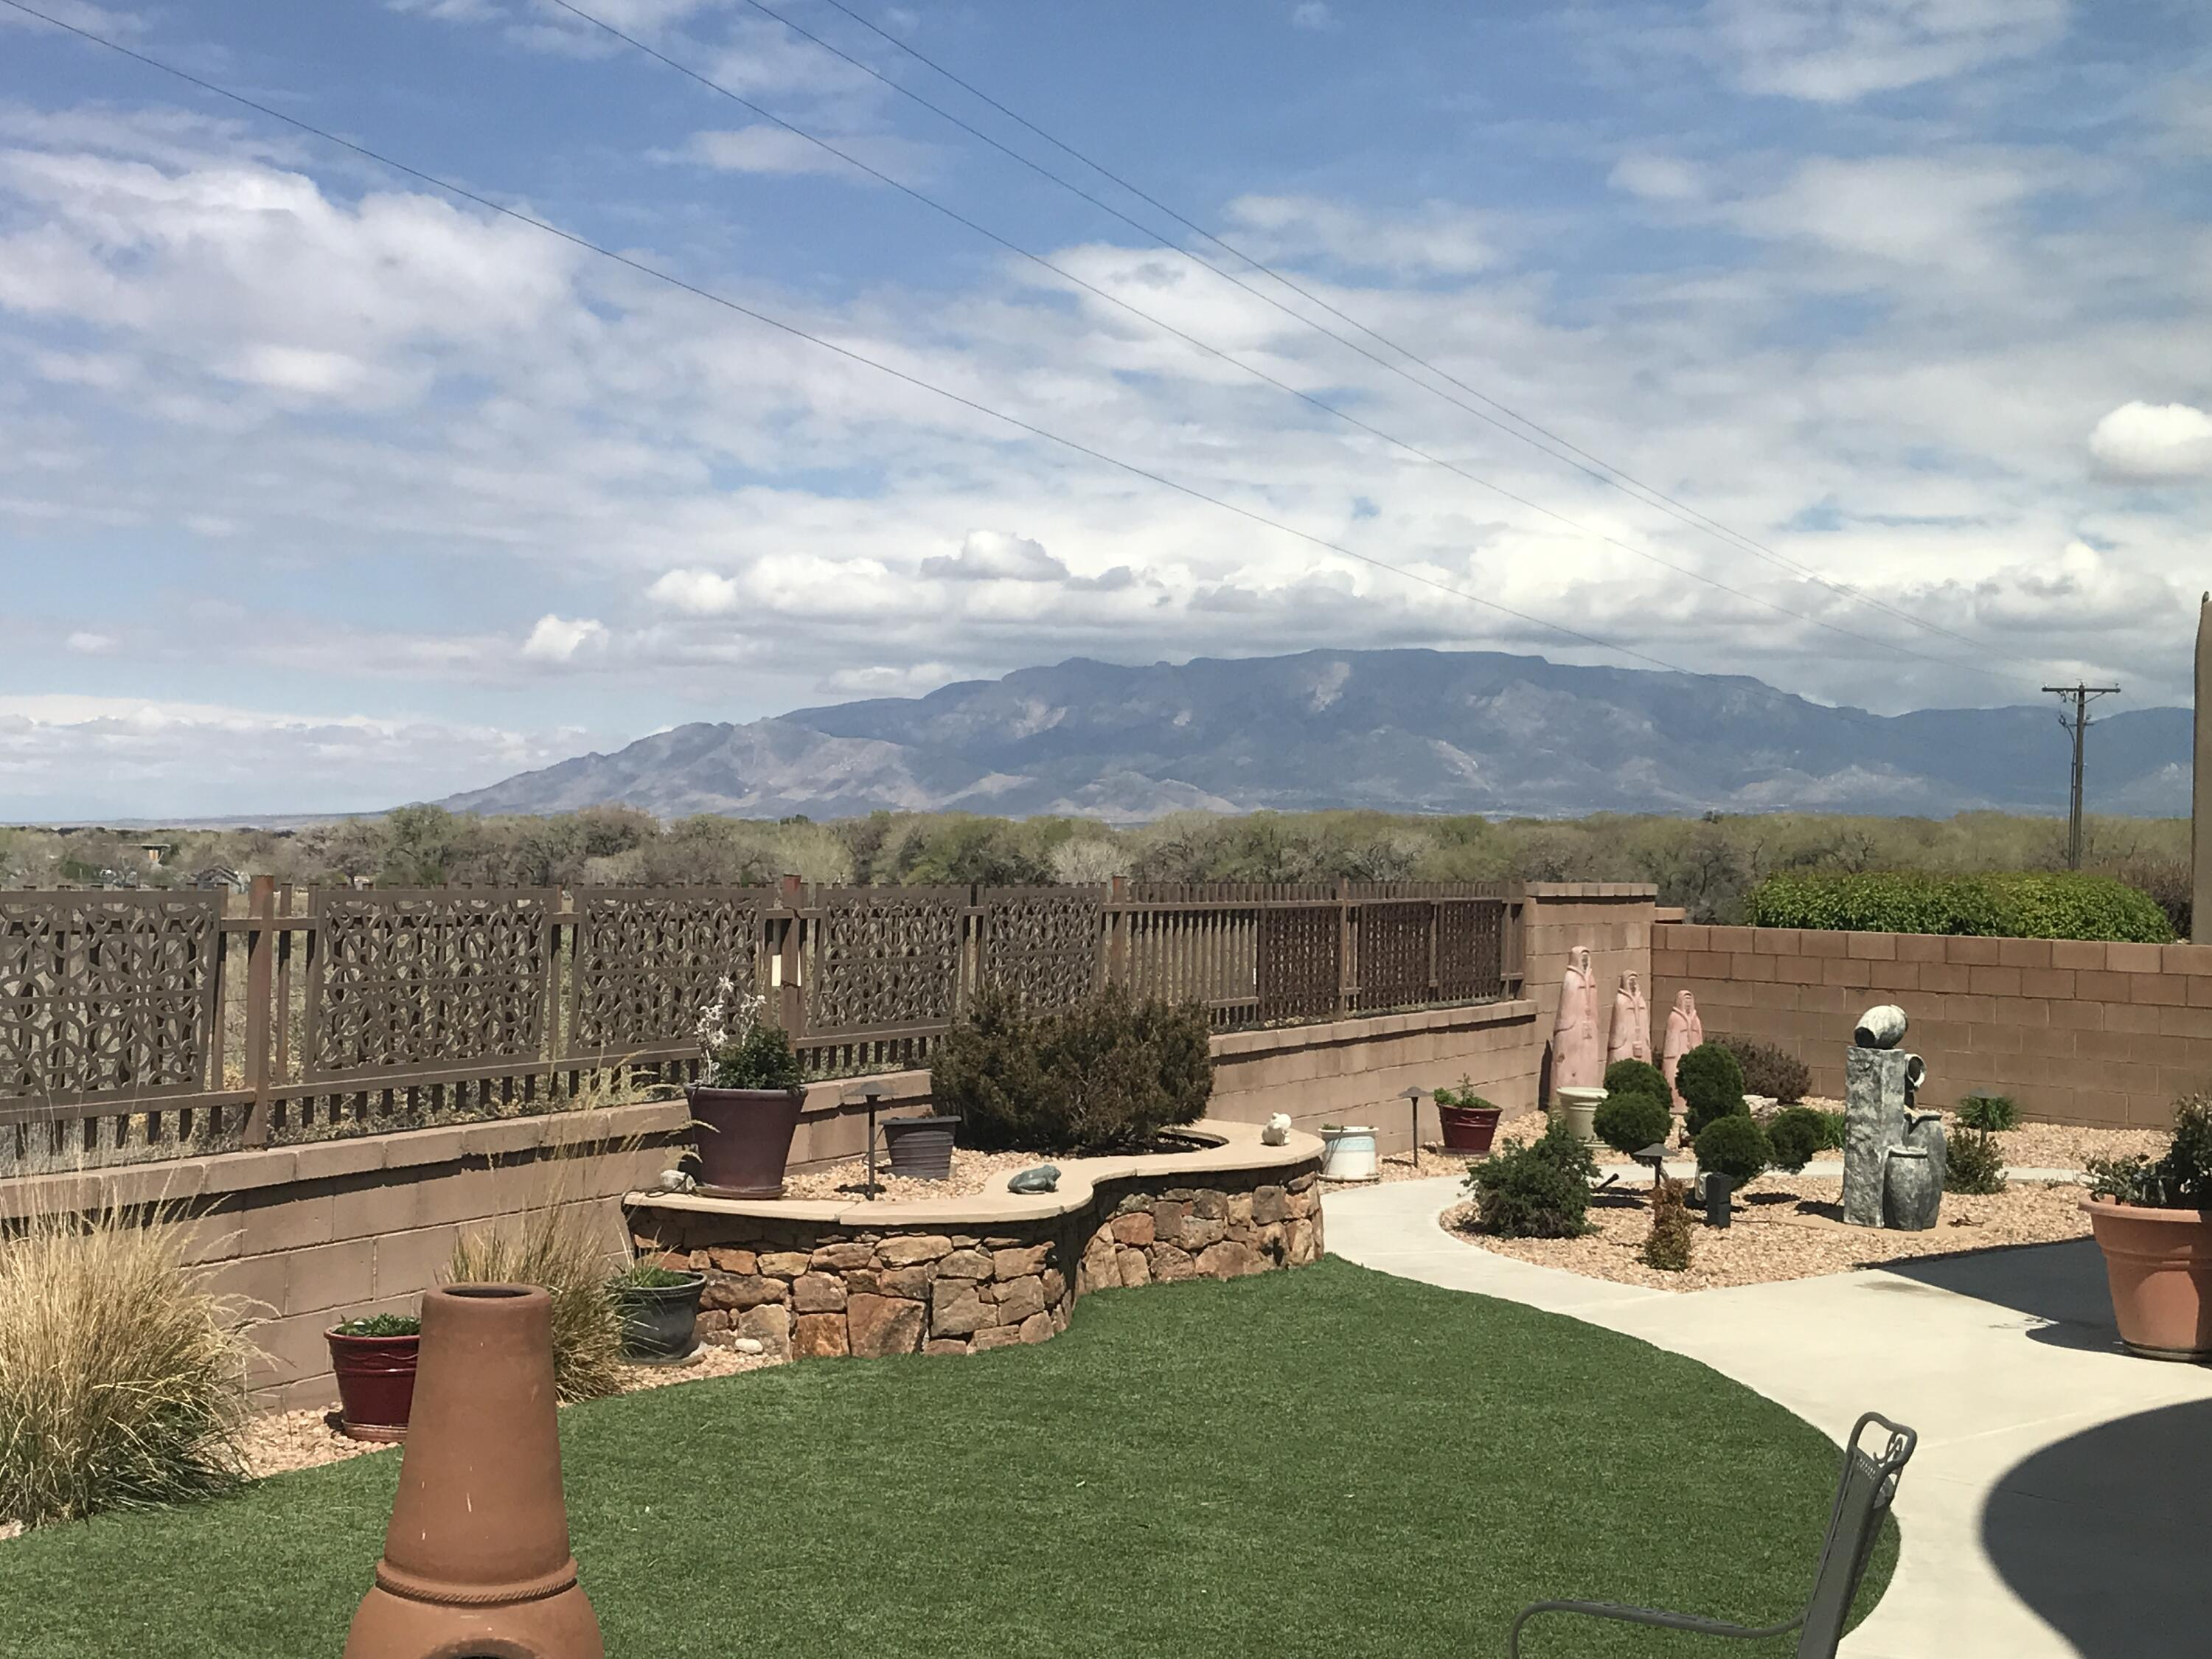 Views Views ! Mountains, Balloons, Sunsets. Backs Bosque Open Space, Walk or Bike. Exclusive El Bosque Gated Area. Easy access to Montano or Coors I/40 -10 min to Dwn Town. Shopping & Eateries Galore. 1 Level Custom, 4 Car Garage w/Loads of Storage & Cabinets. Gourmet Kitchen,2 Pantries, Granite Counters, Lush Dropped Cabinets, Double Oven, Microwave & Gas Cooktop. Top of the line Appliances. Cov/Patio w/ Built-in BBQ, Speakers & Sun Shade. Drip System & Water Feature. Lg Great Room, FP& Raised Ceilings, Wall of Windows/Views.  Decorative Texture & Ventian Plaster. Tile & Carpeted Floors, LG Dramatic Entry. LGBilliard/Family Rm or Formal DR..Pool Table/Cover, TV(Big Screen) & Bar Stools Stay. Master BR/Huge Walk-in Closet. Lg Full Bath. + 3 LG Bedrooms + 2 1/2 Baths. Be sure & click More